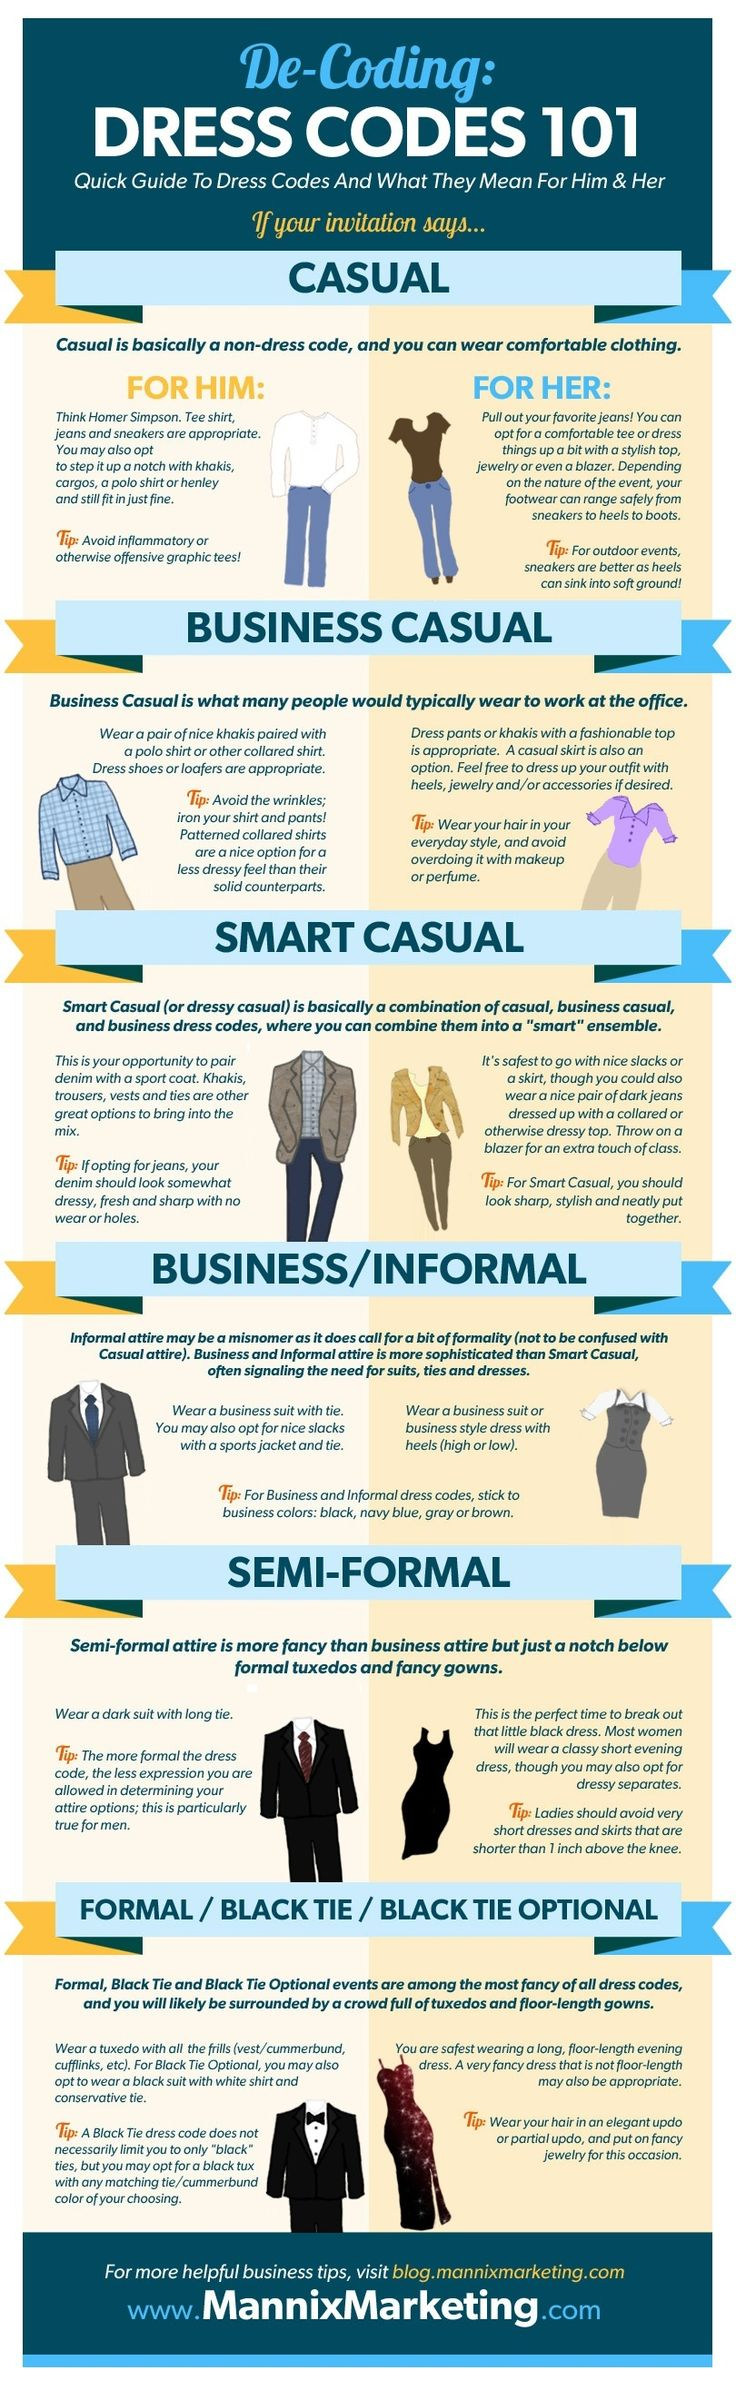 Guide to clothing attire. dress code for formal, semi formal, business casual events